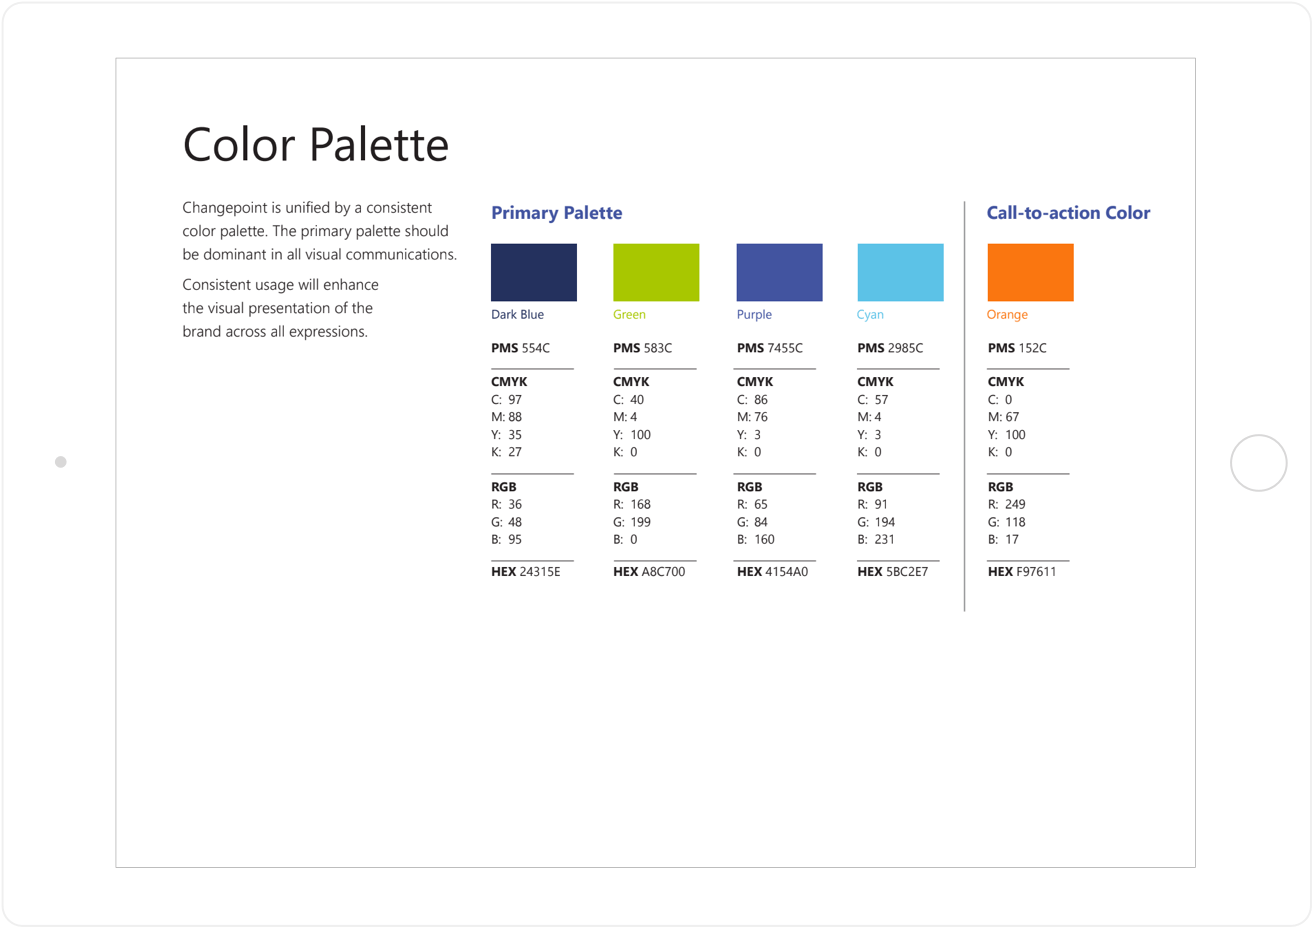 Changepoint color palette